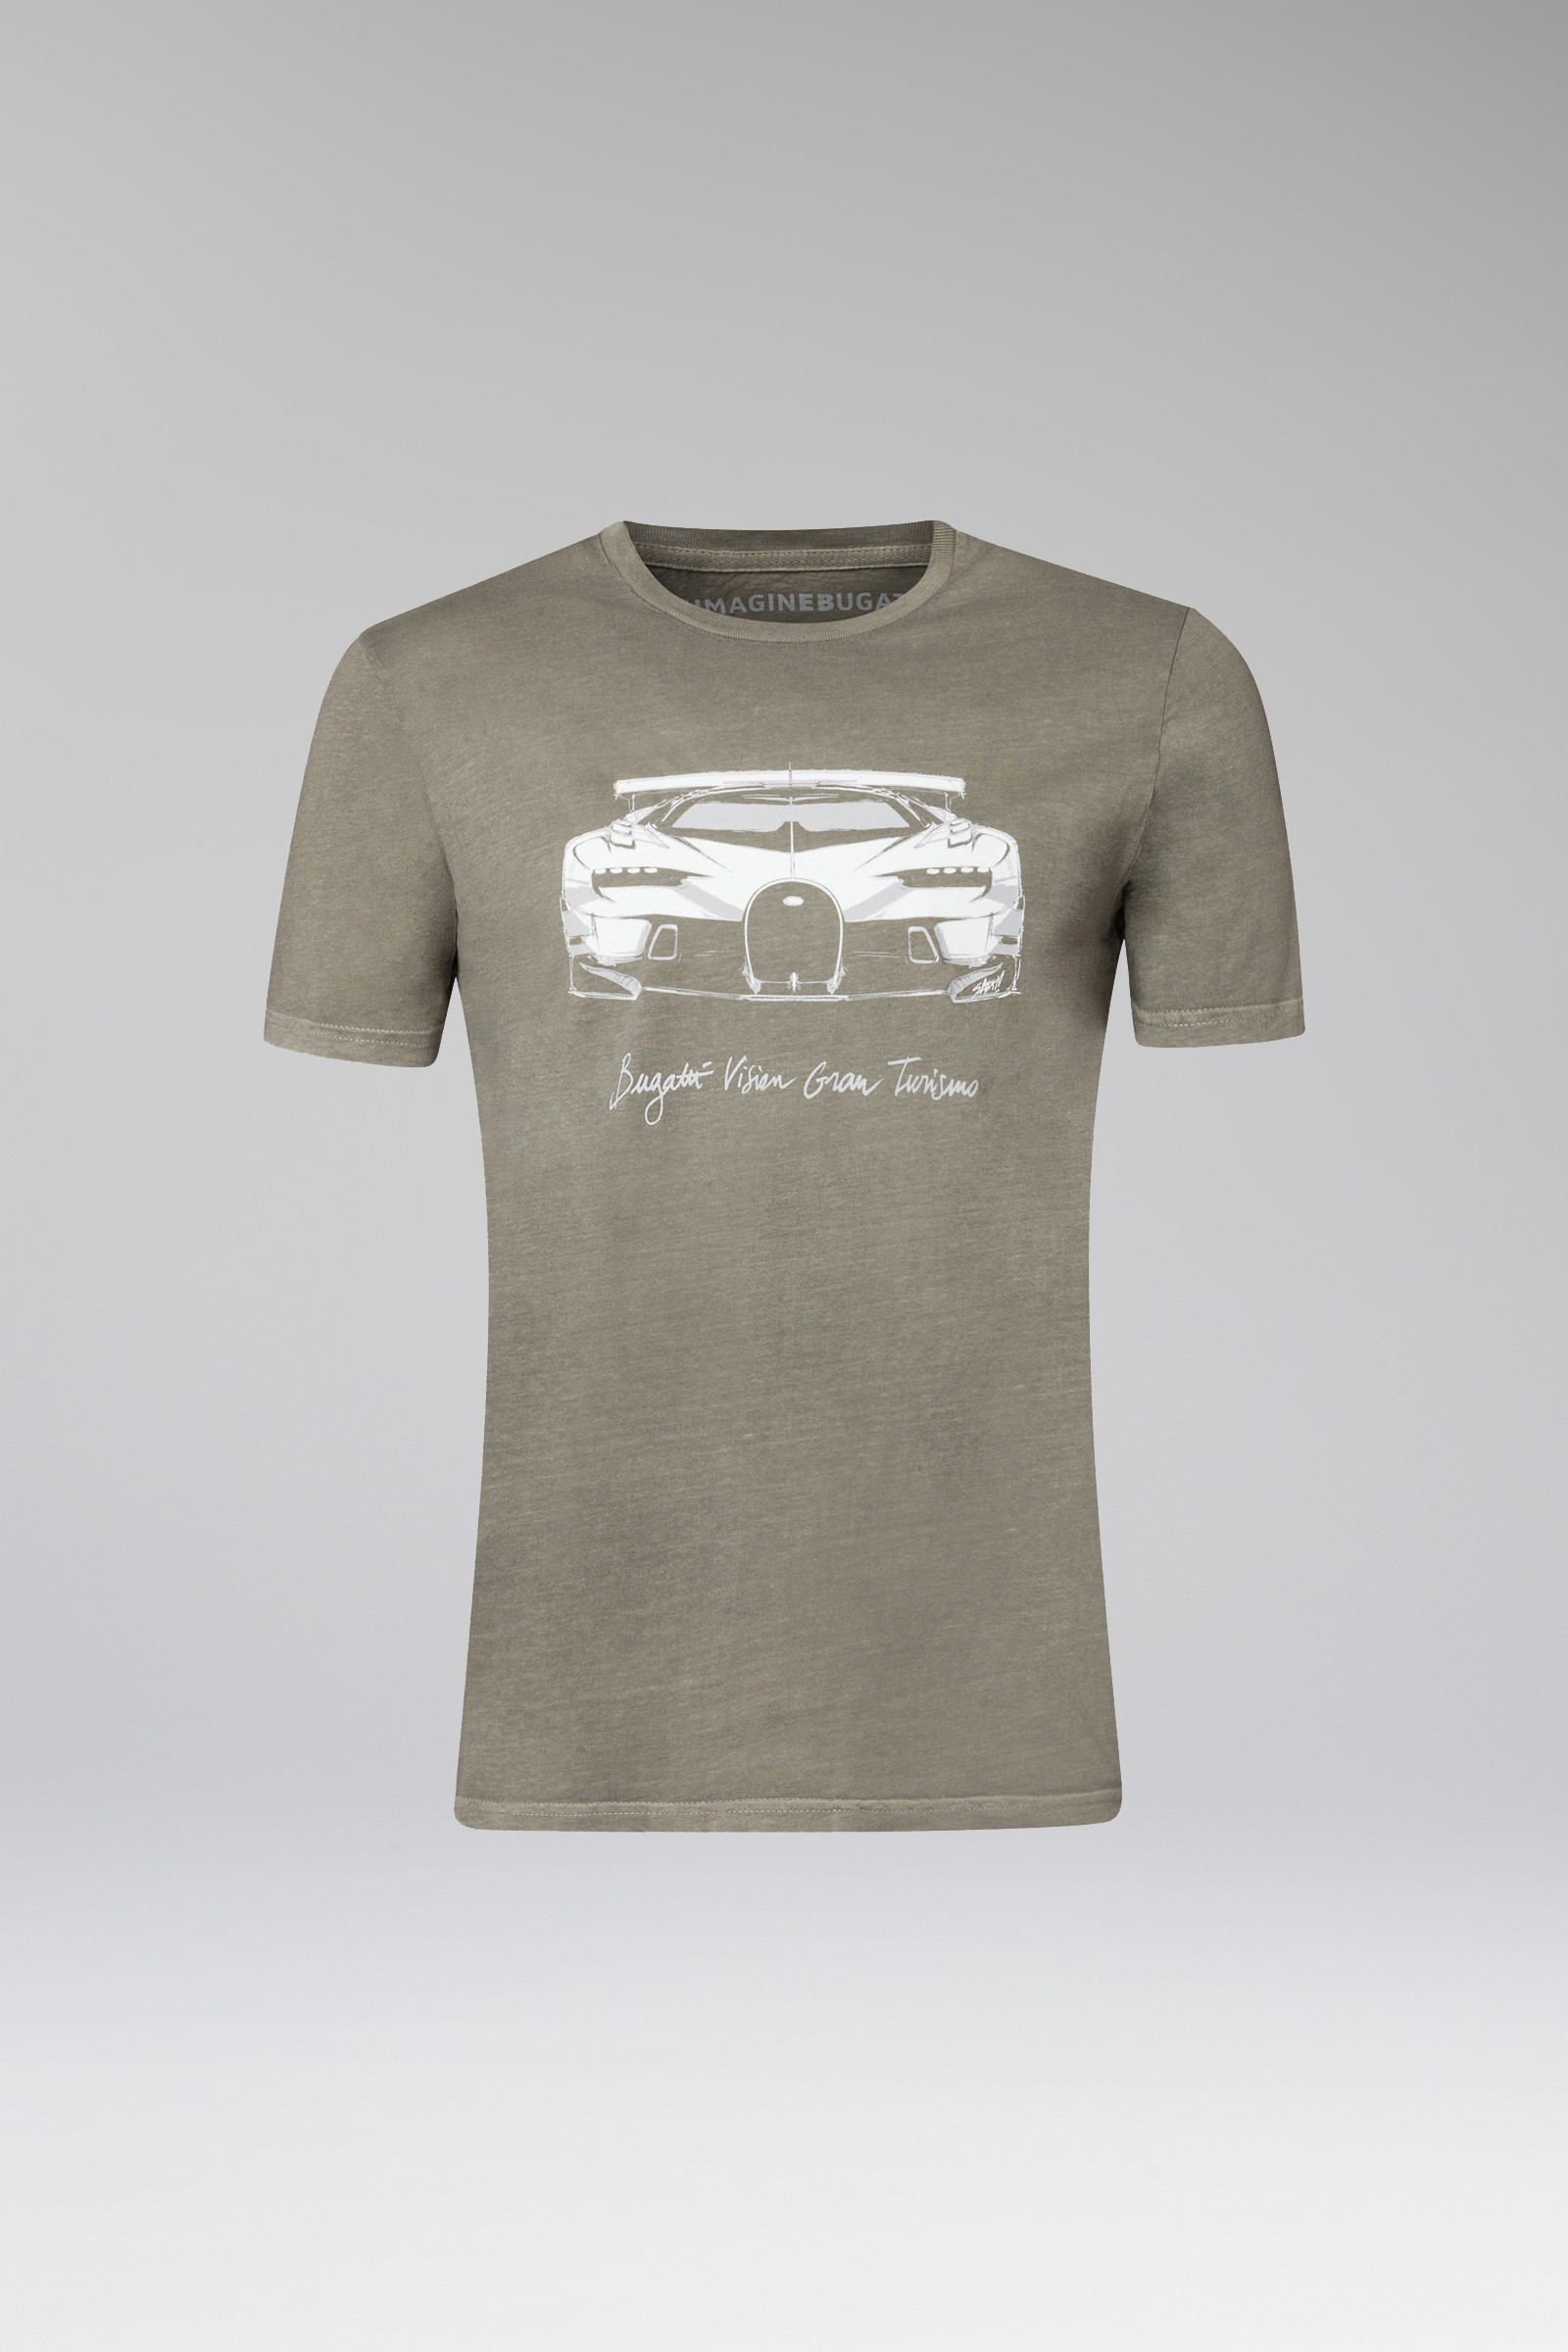 Silver Vision Gt T Shirt By Bugatti Choice Gear